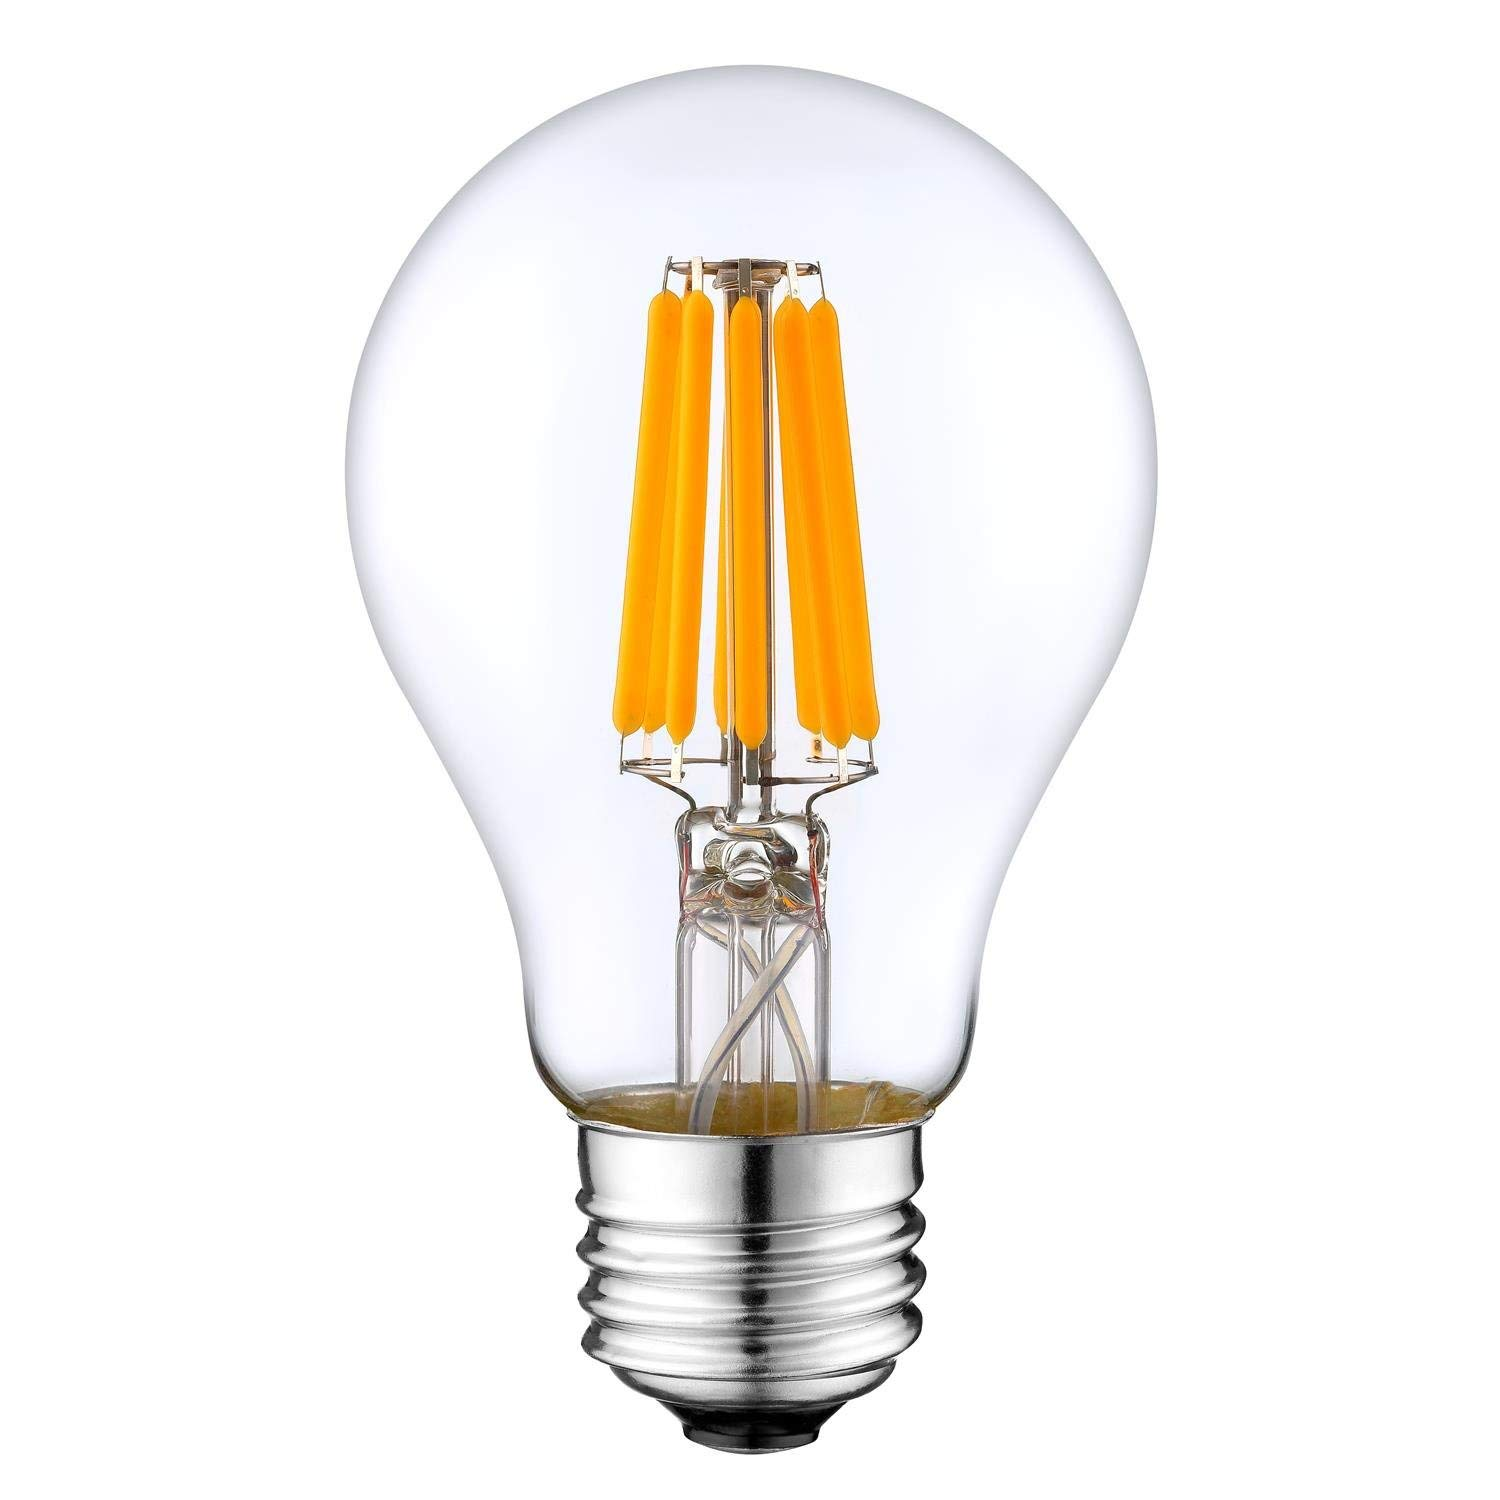 Warm White,650lm Dimmable LED Edison Light Bulb 8 Filament Vintage E26 Base 6.5Watt 4 pack CRI80cri,Clear Glass 60W Equivalent Blue star A19 UL /& Energy Star listed A60 for Home Outdoor: 2700K